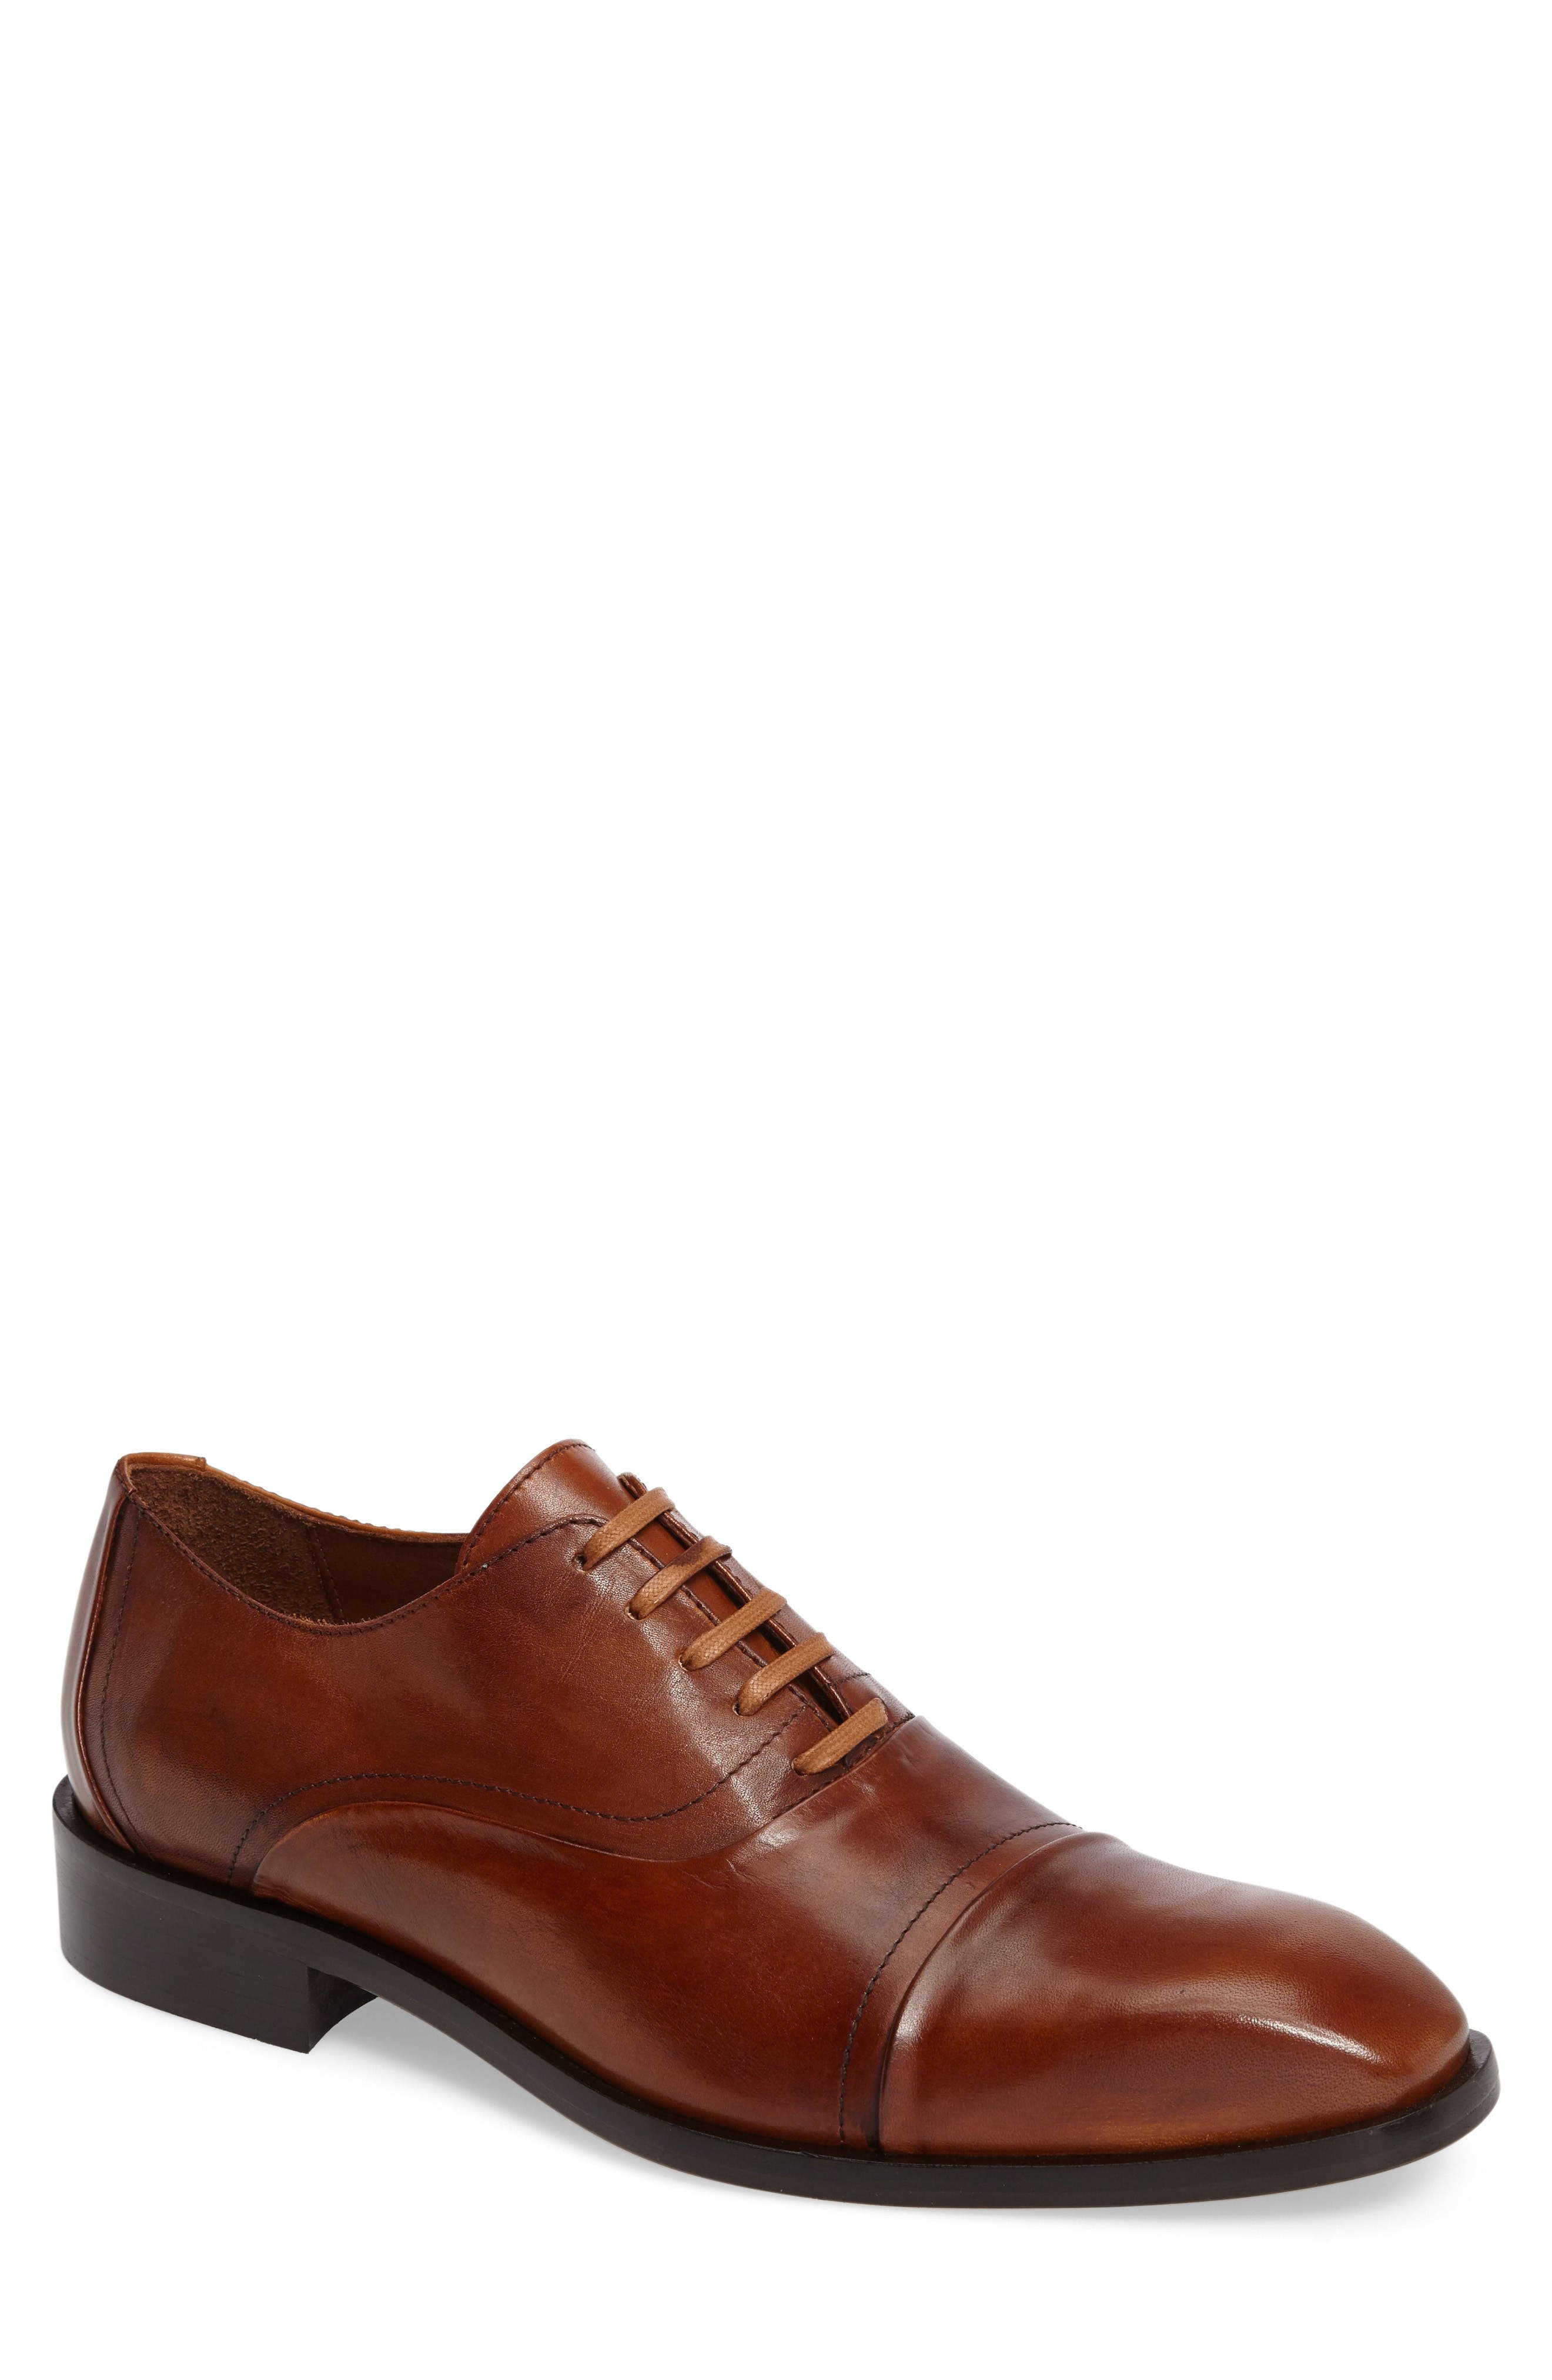 Donald J Pliner Valerico Cap Toe Oxford (Men)